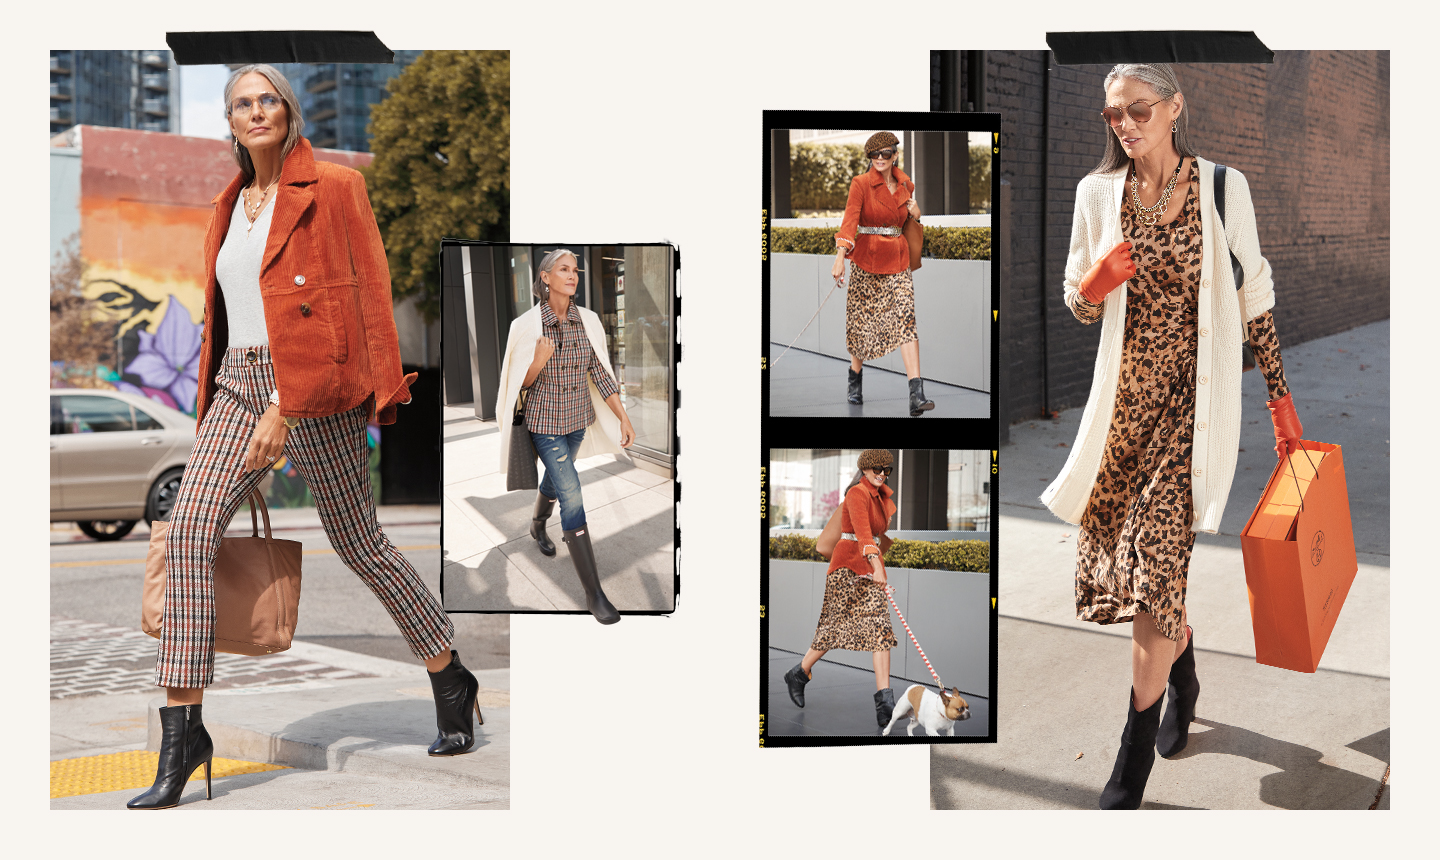 versatile clothing = outfits for days!